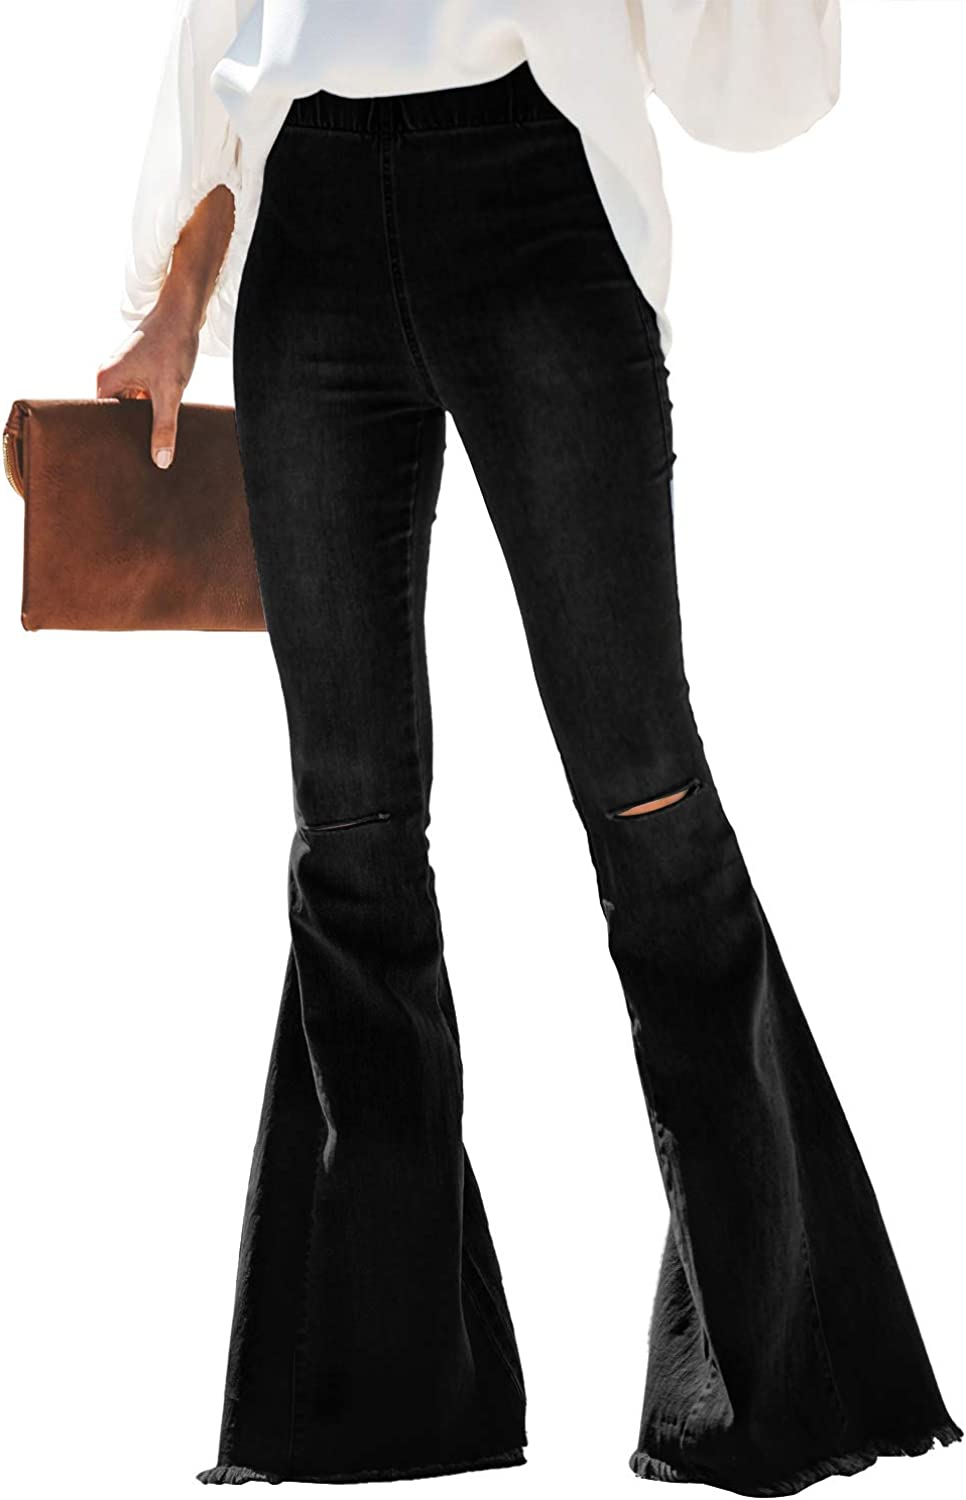 Paitluc half Womens Classic Max 87% OFF Stretchy Flare Pa Denim Jeans Bell Bottom